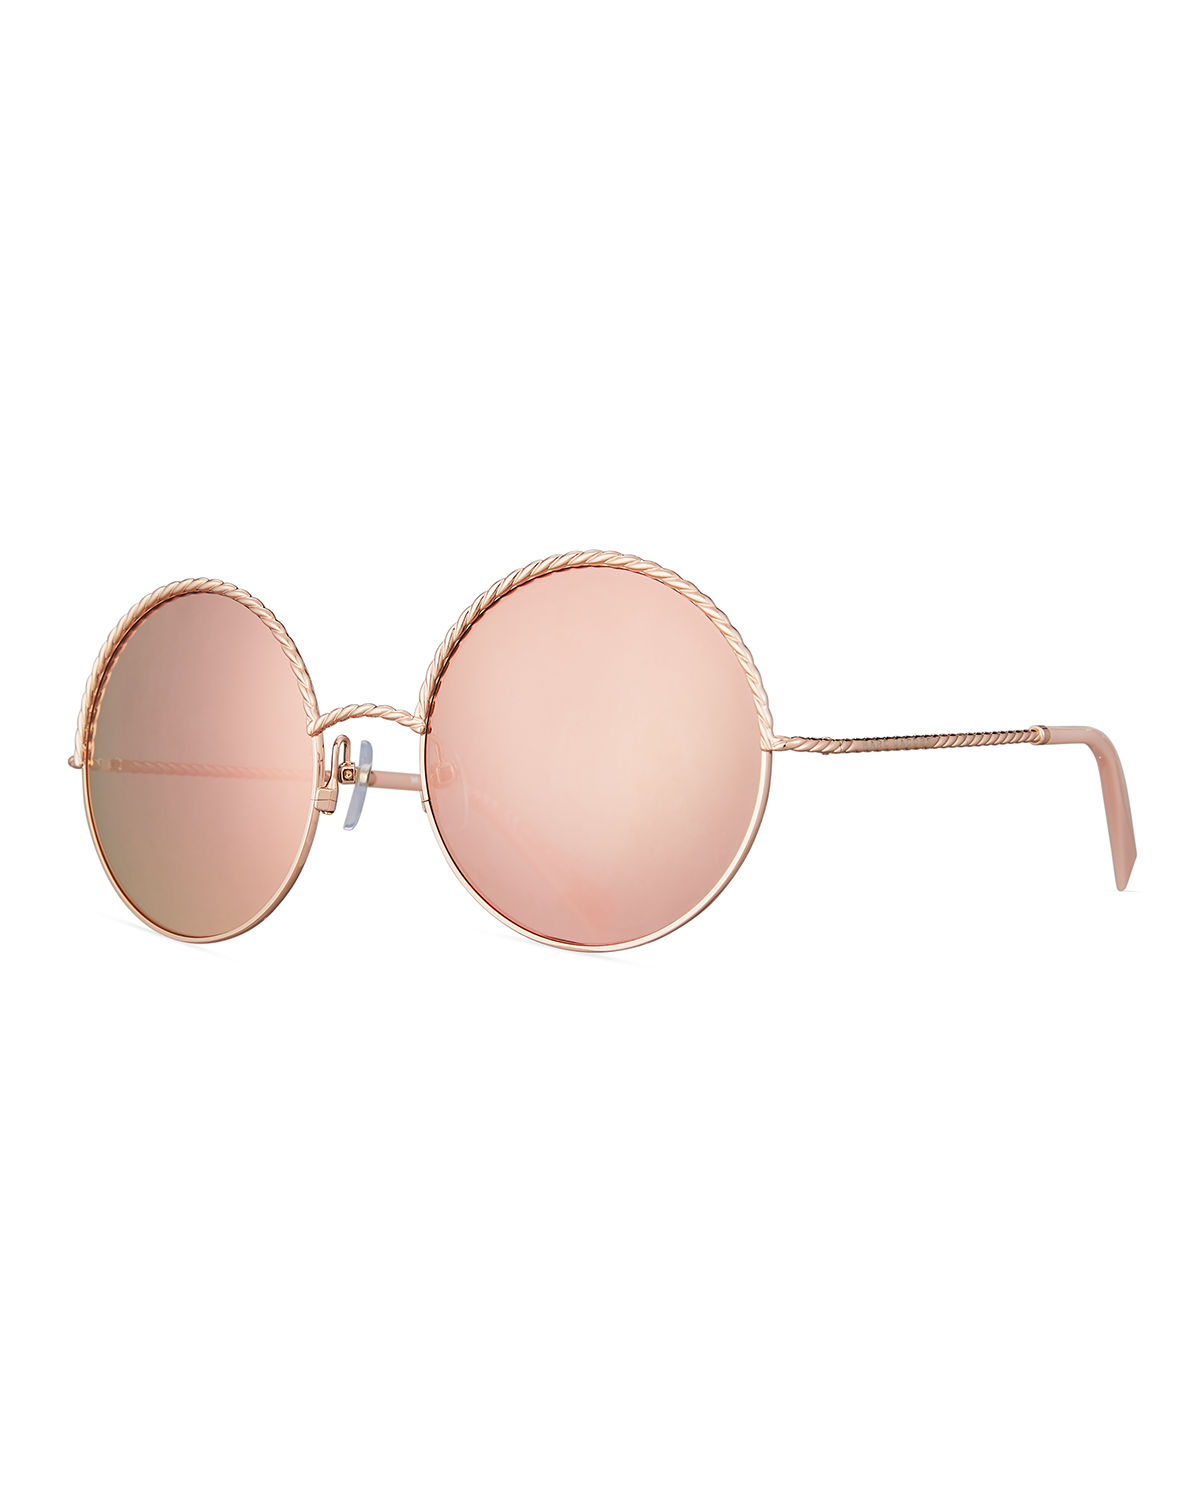 a3eea5a9e6 Marc Jacobs Round Metal Twist Sunglasses